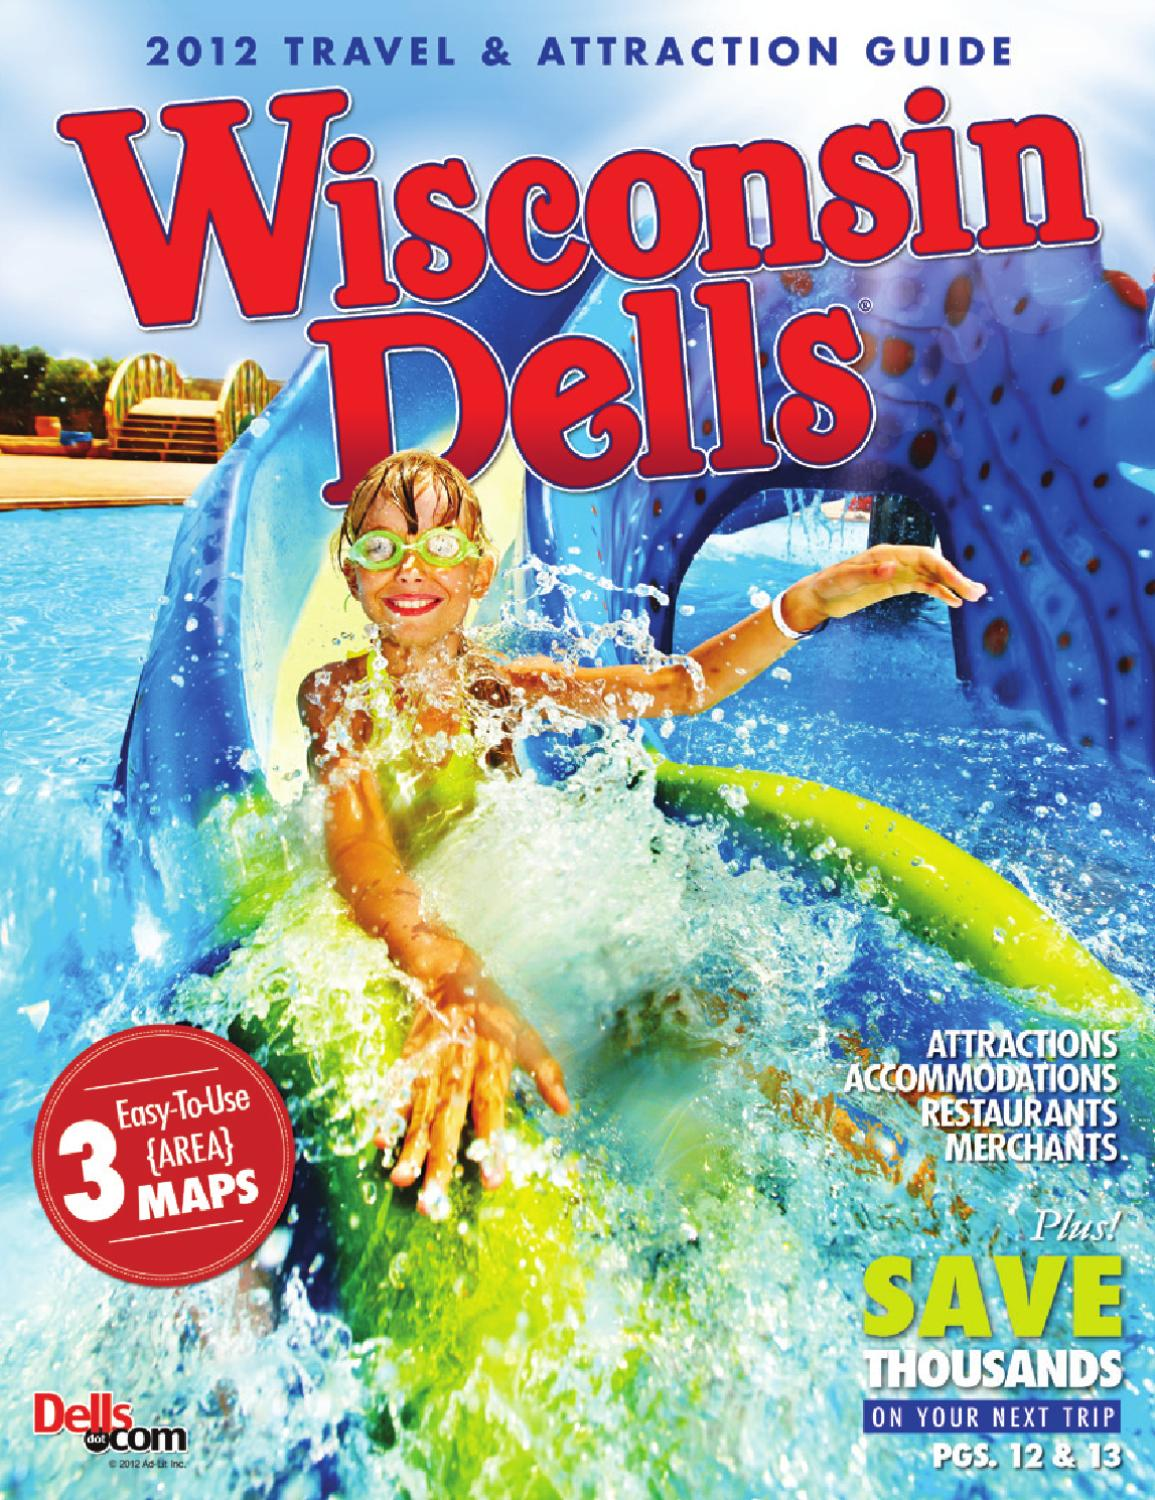 Wisconsin Dells Travel Attraction Guide 2012 By Vector Ink Issuu